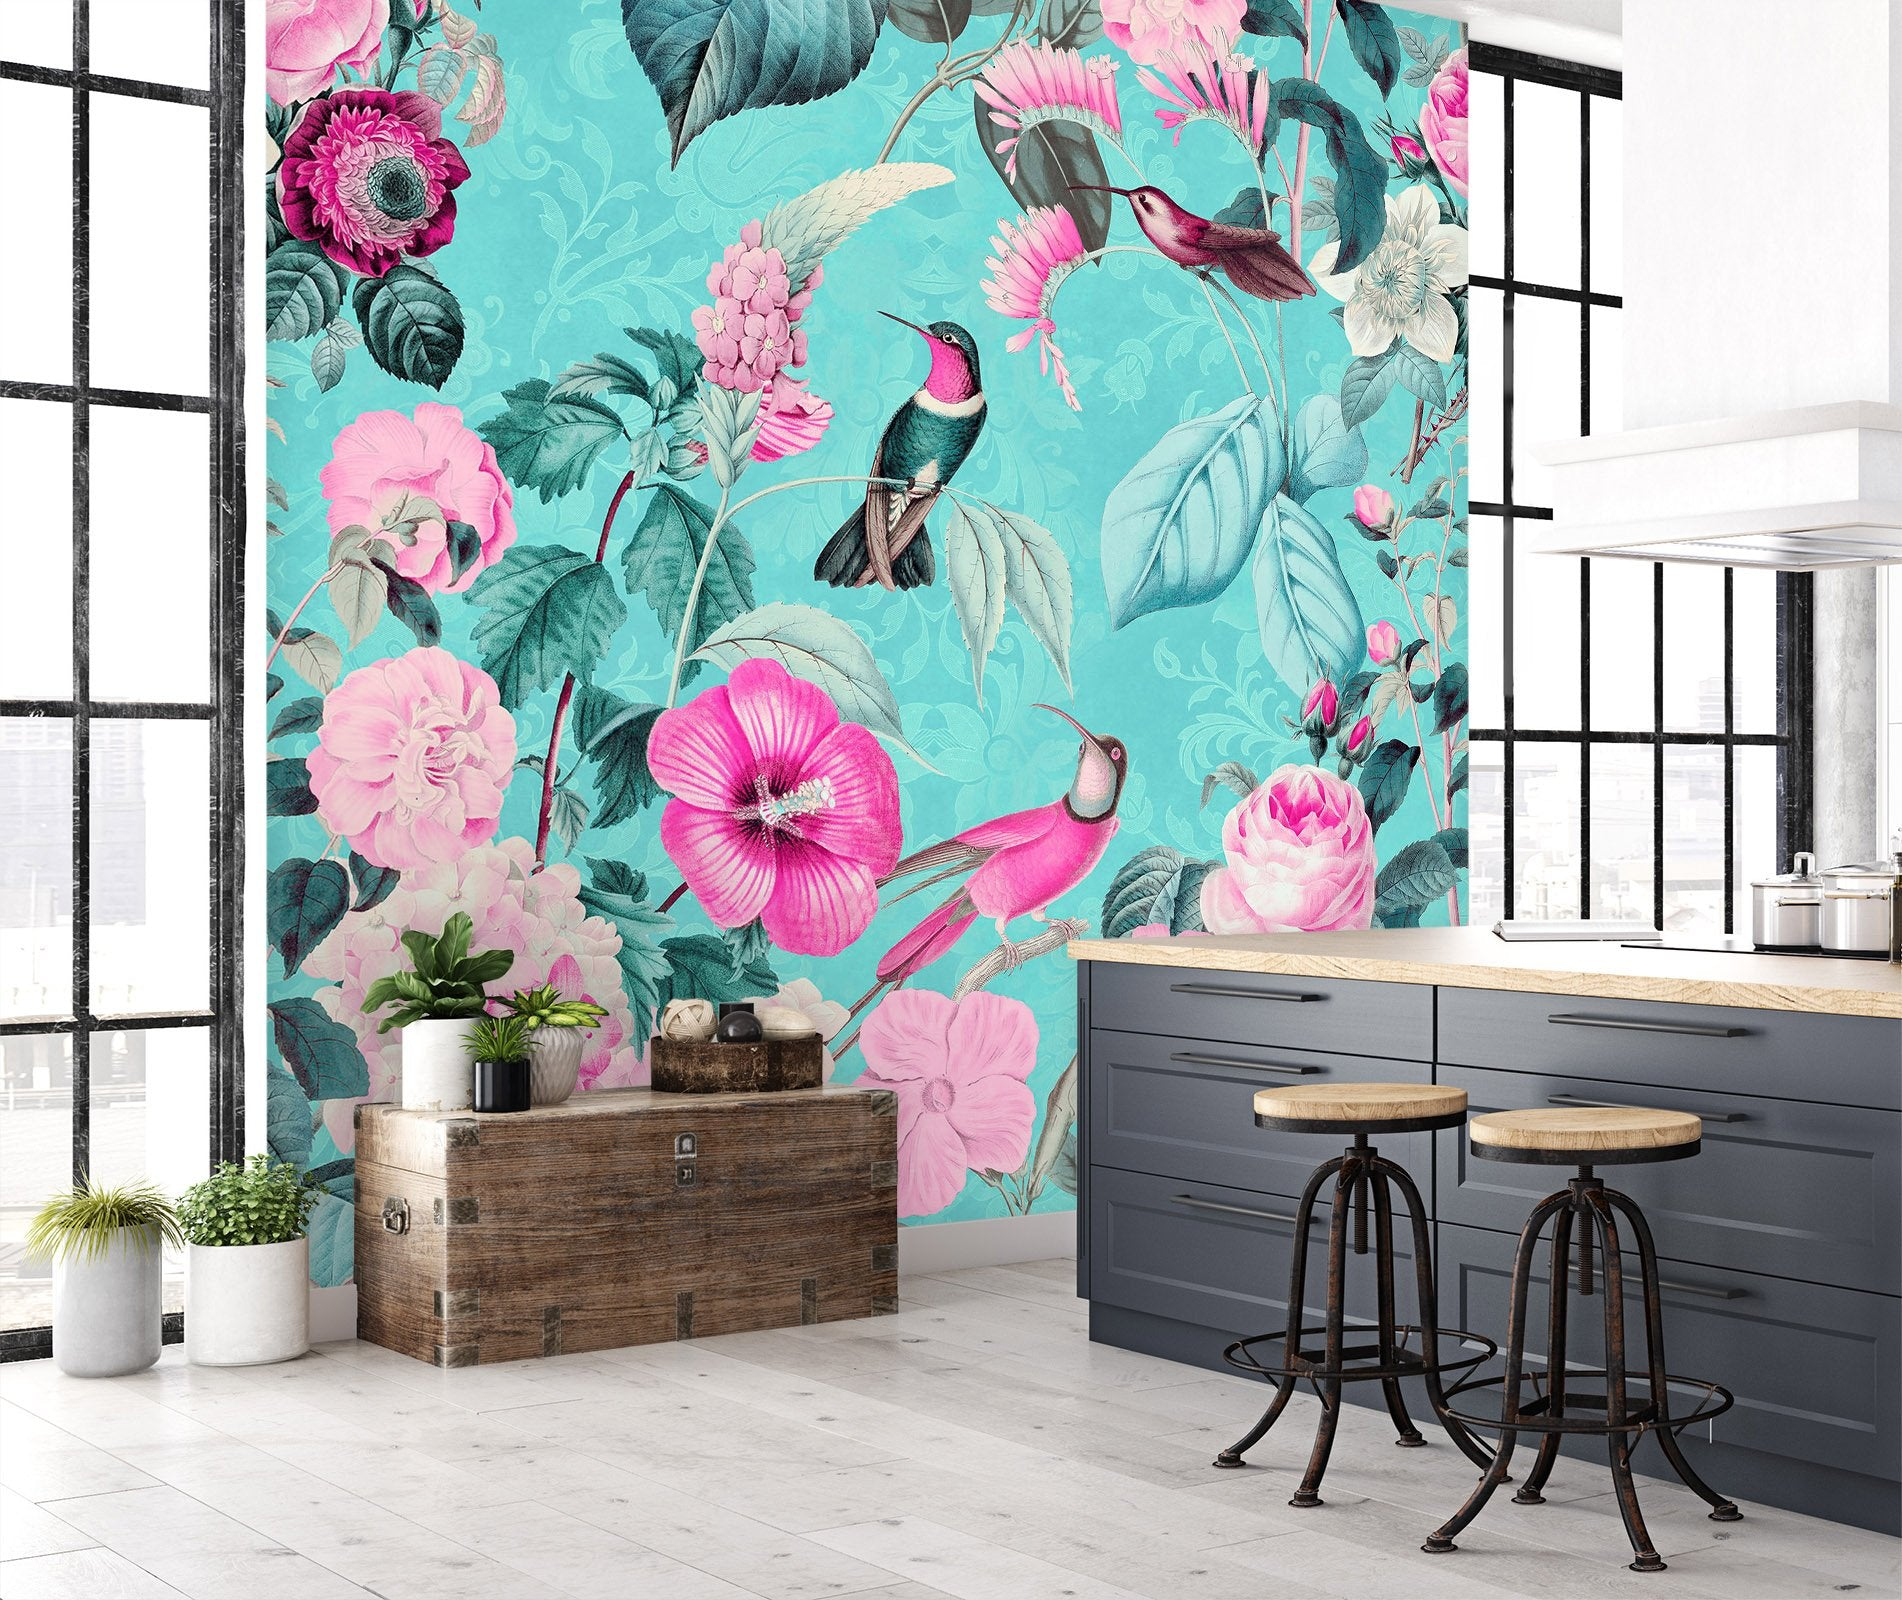 Details about  /3D Leaves Parrot I253 Wallpaper Mural Sefl-adhesive Removable Andrea haase Honey